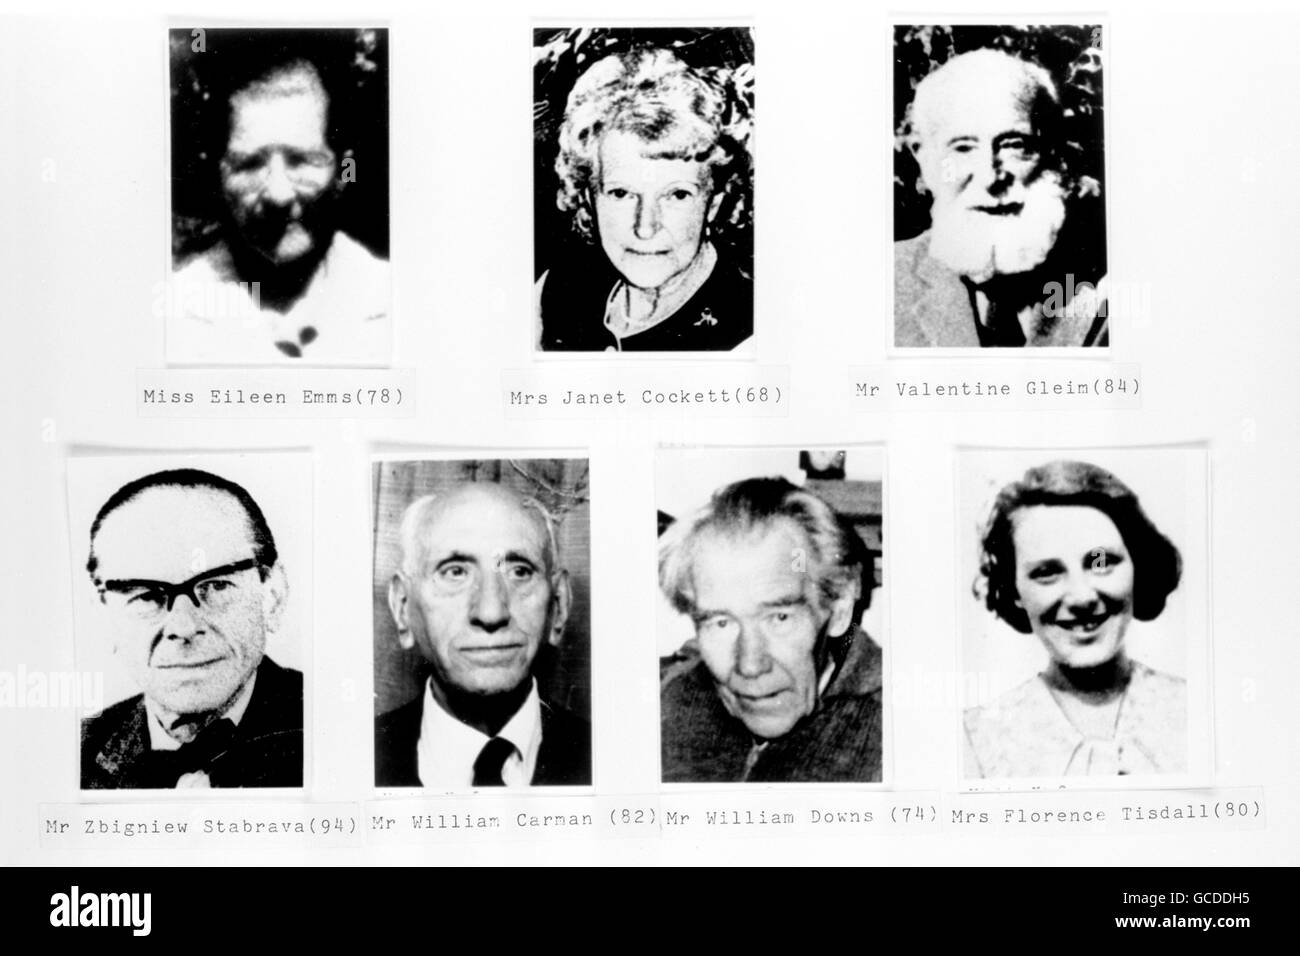 Victims Of Crime Black and White Stock Photos & Images - Alamy